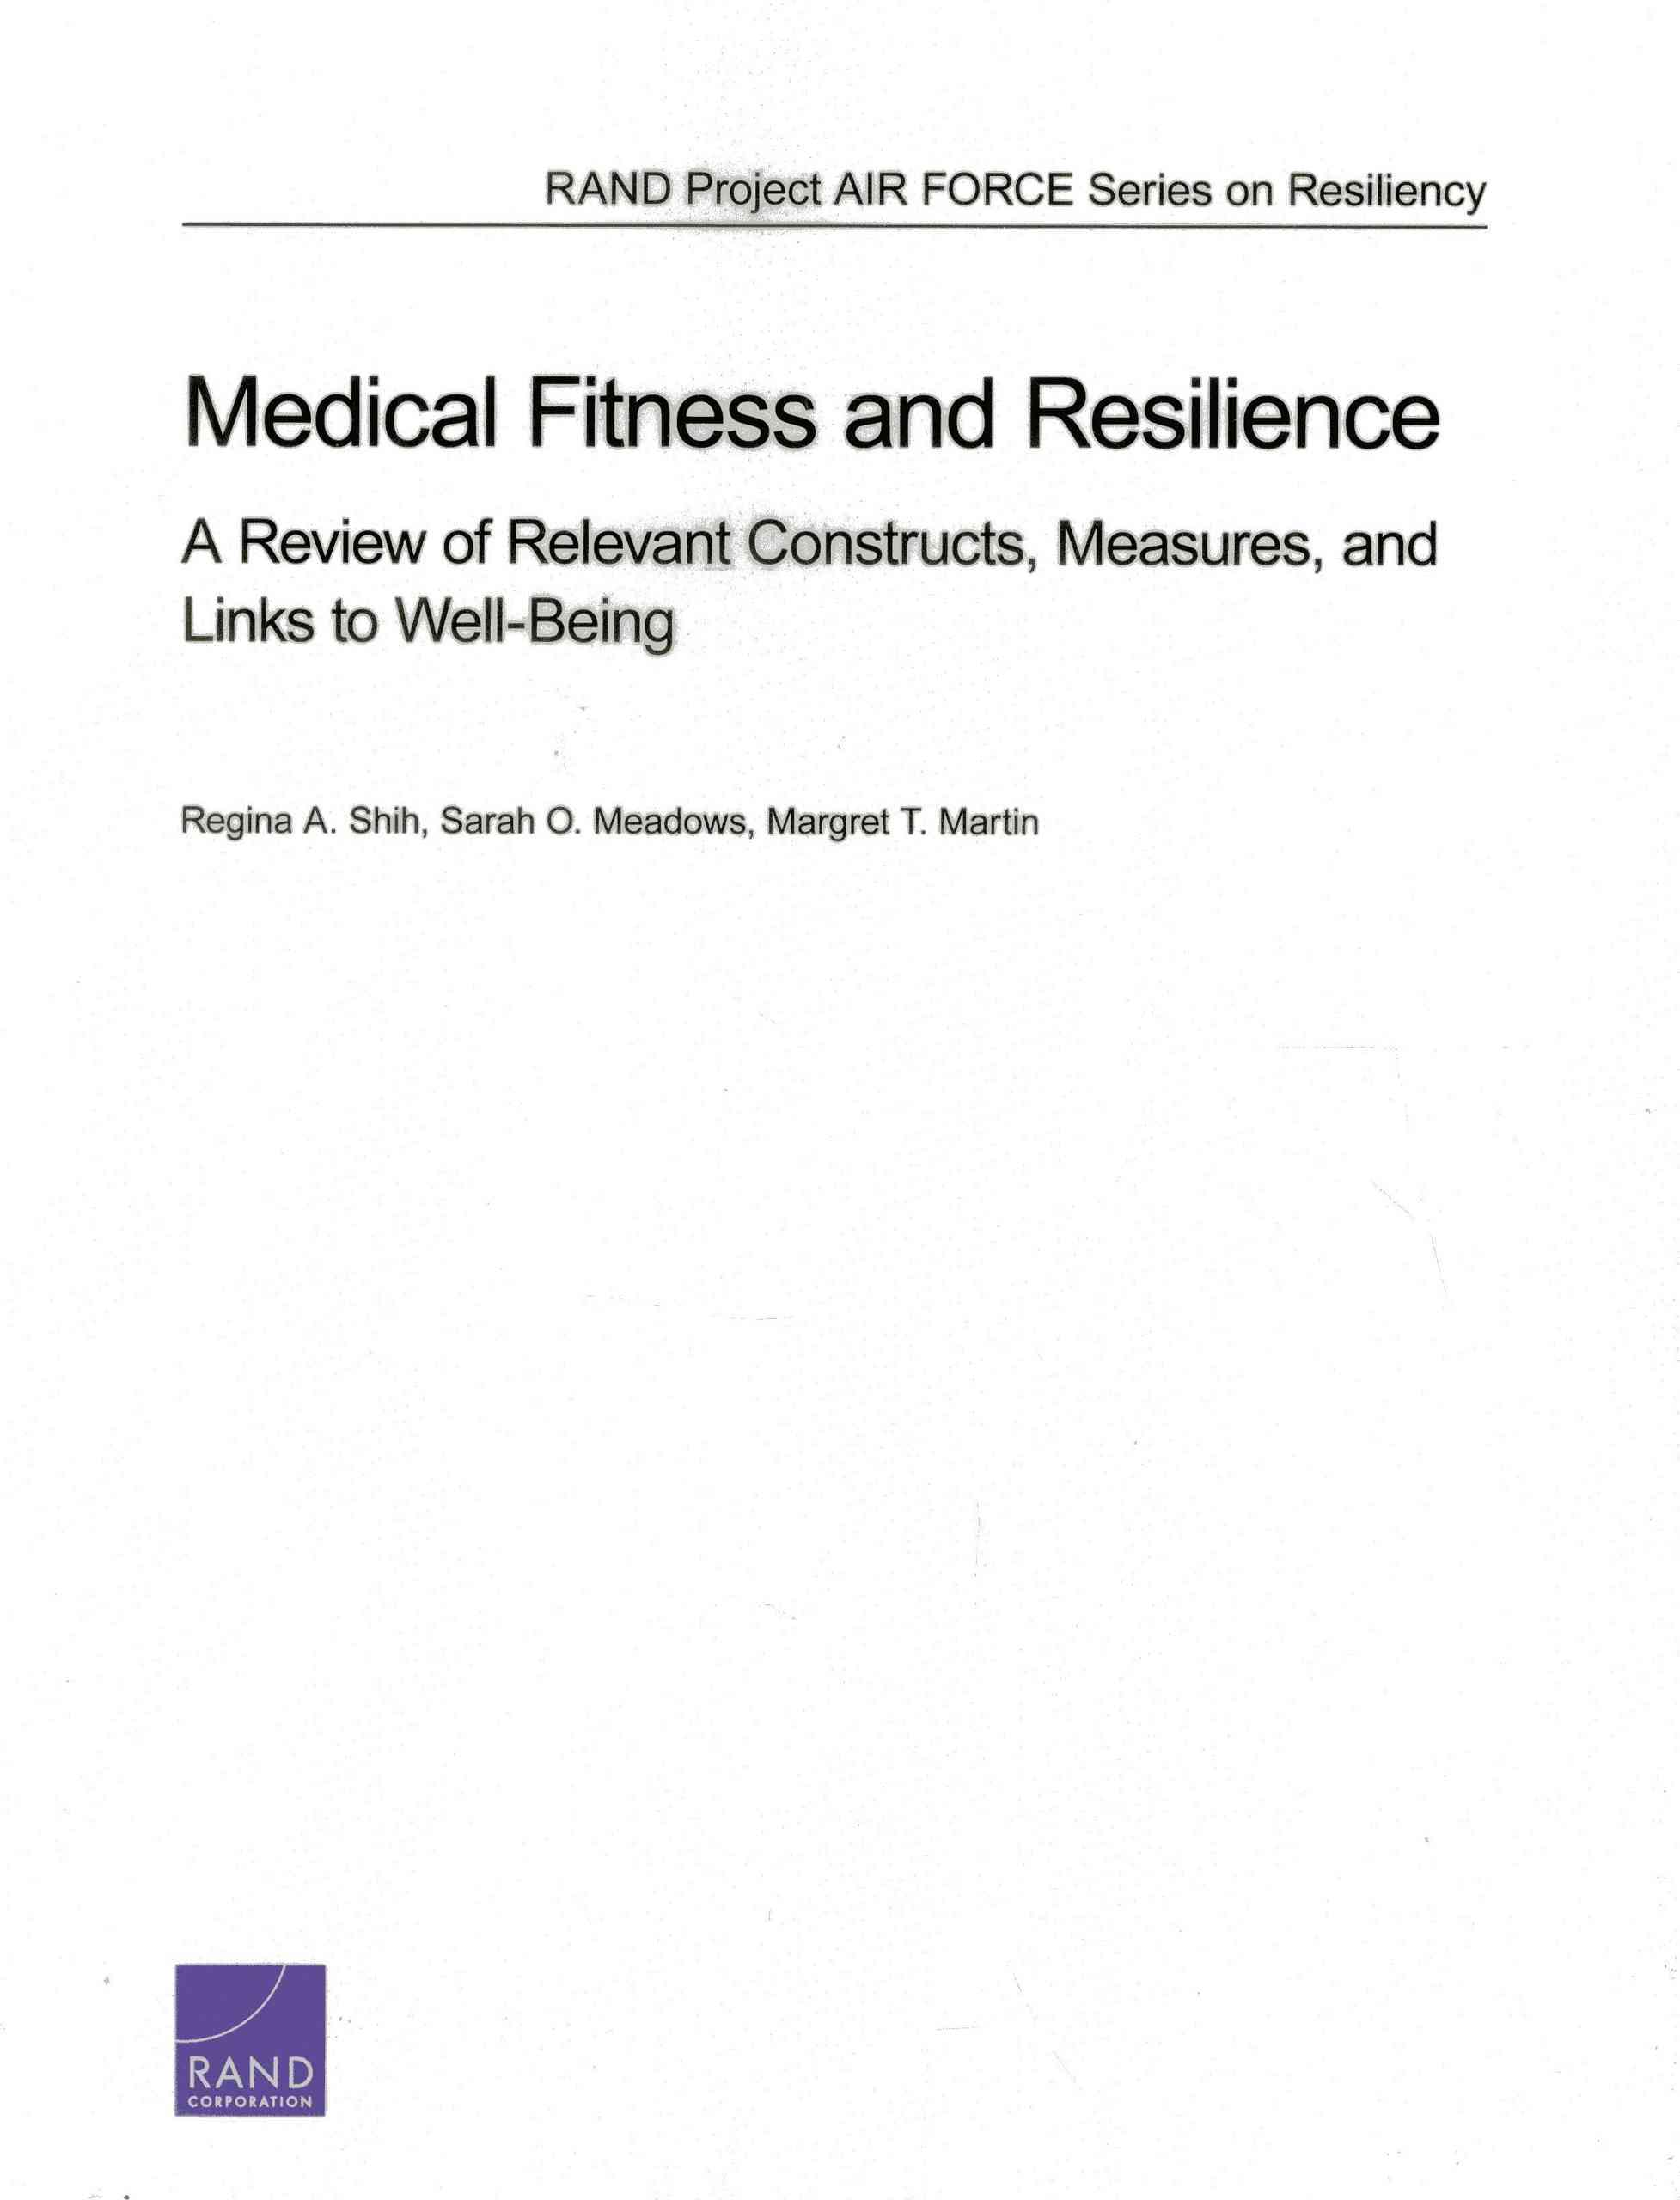 resilience health and literature review page Disinfection and public health committee  literature review commitee  resilience is a strong emerging theme within the water sector from long term water.